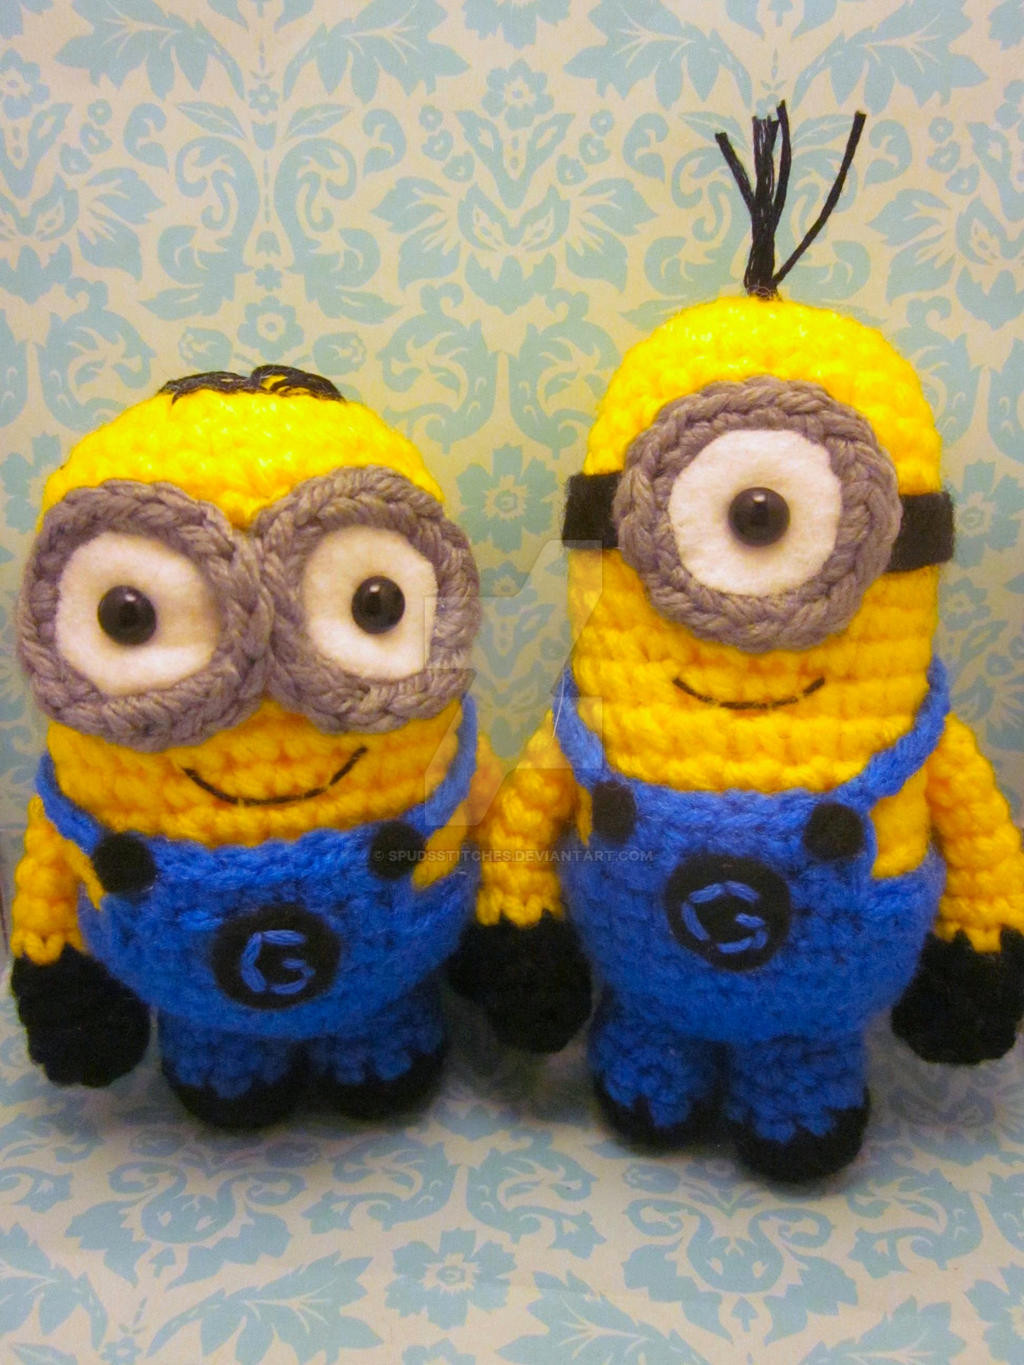 Amigurumi Free Patterns Minions : Minion Despicable Me Amigurumi Crochet Dolls by ...